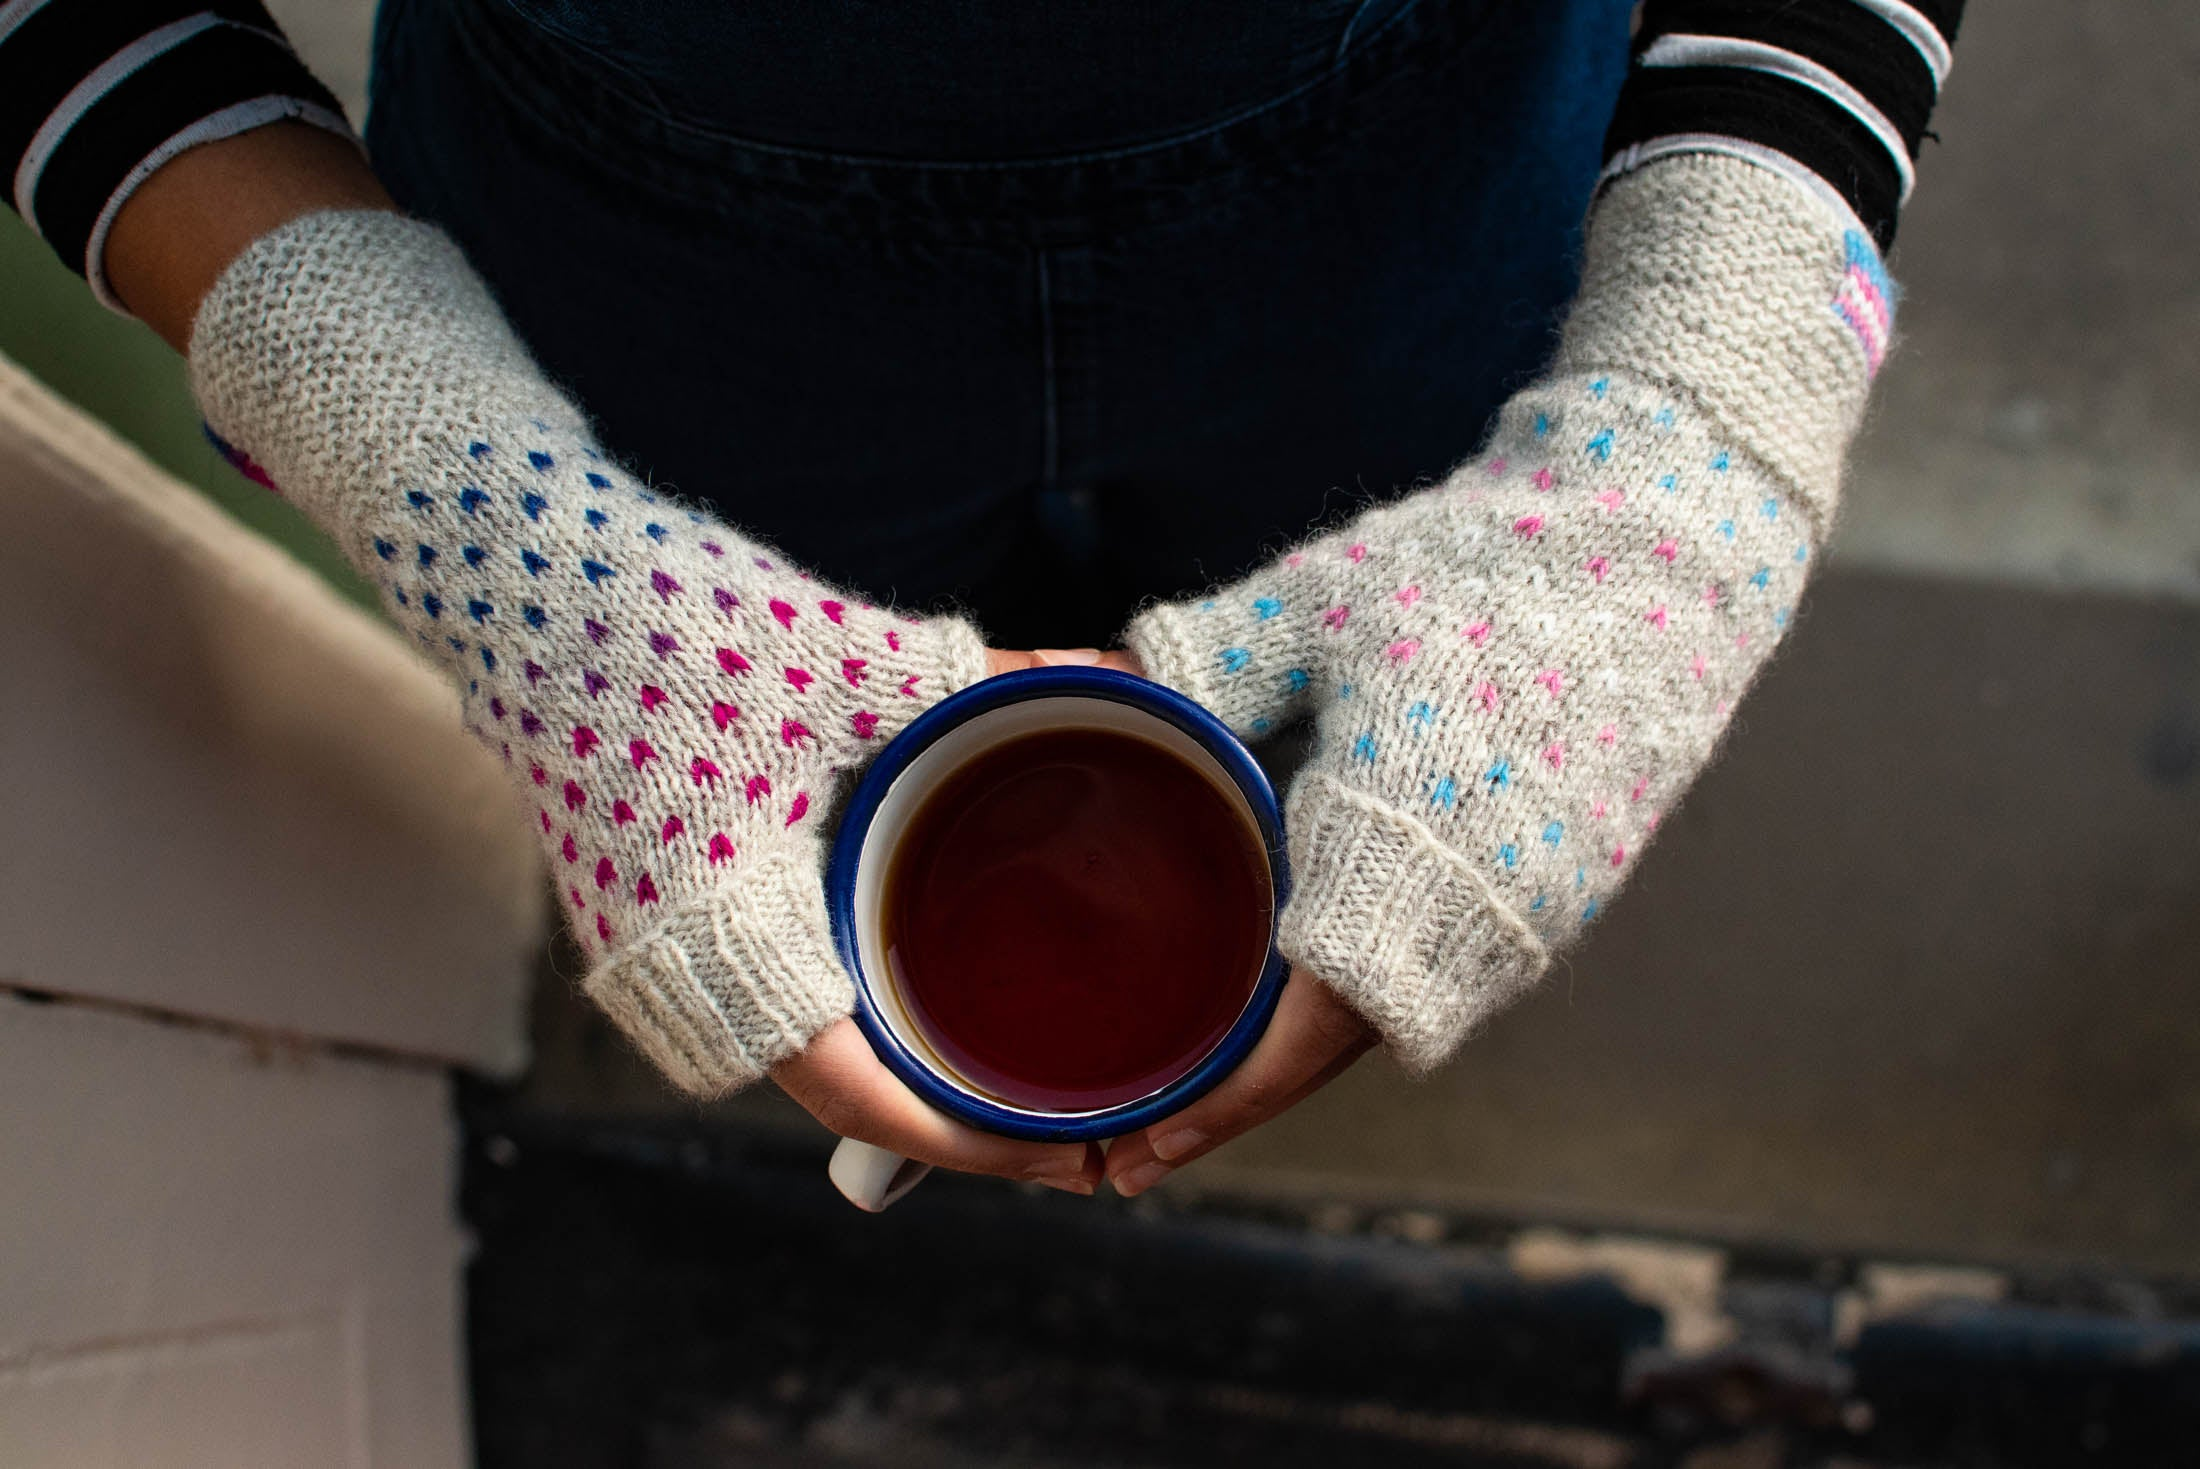 Image of hands shot from above, wearing a rainbow mitt and a bisexual mitt, holding a cup of black coffee